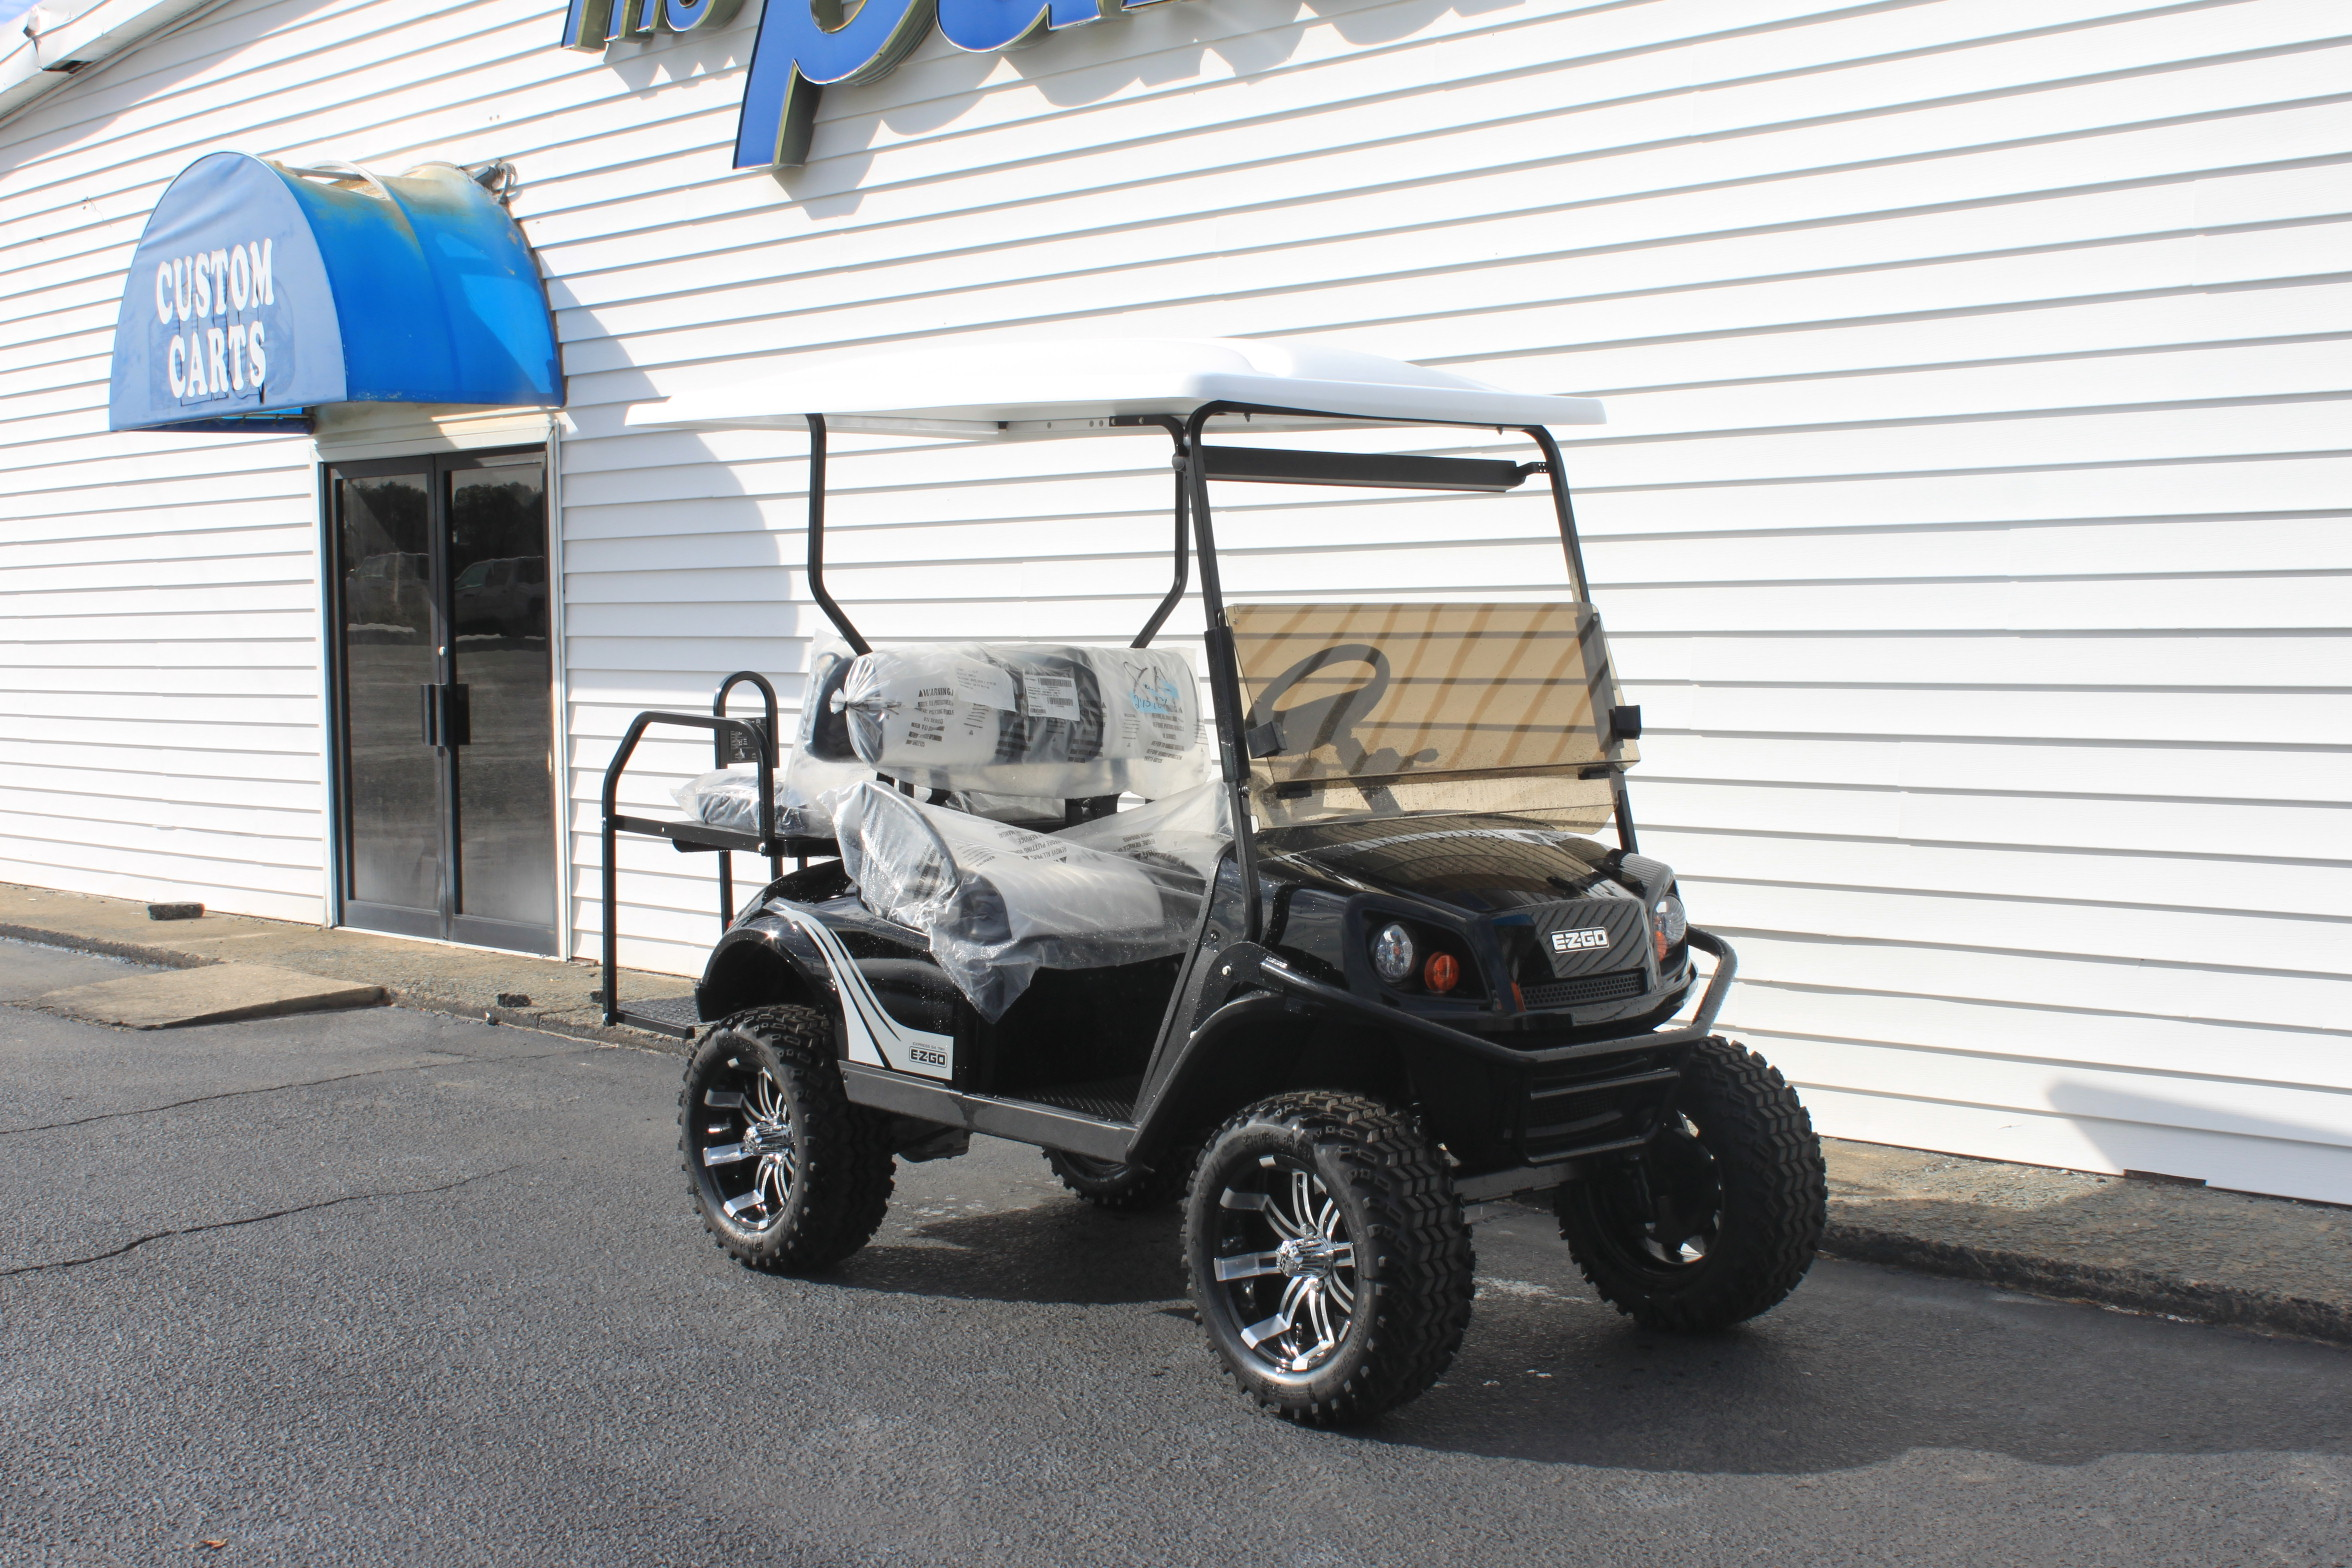 STOCK# 3455314, 2020 E-Z-GO S4 72 VT GOLF CART